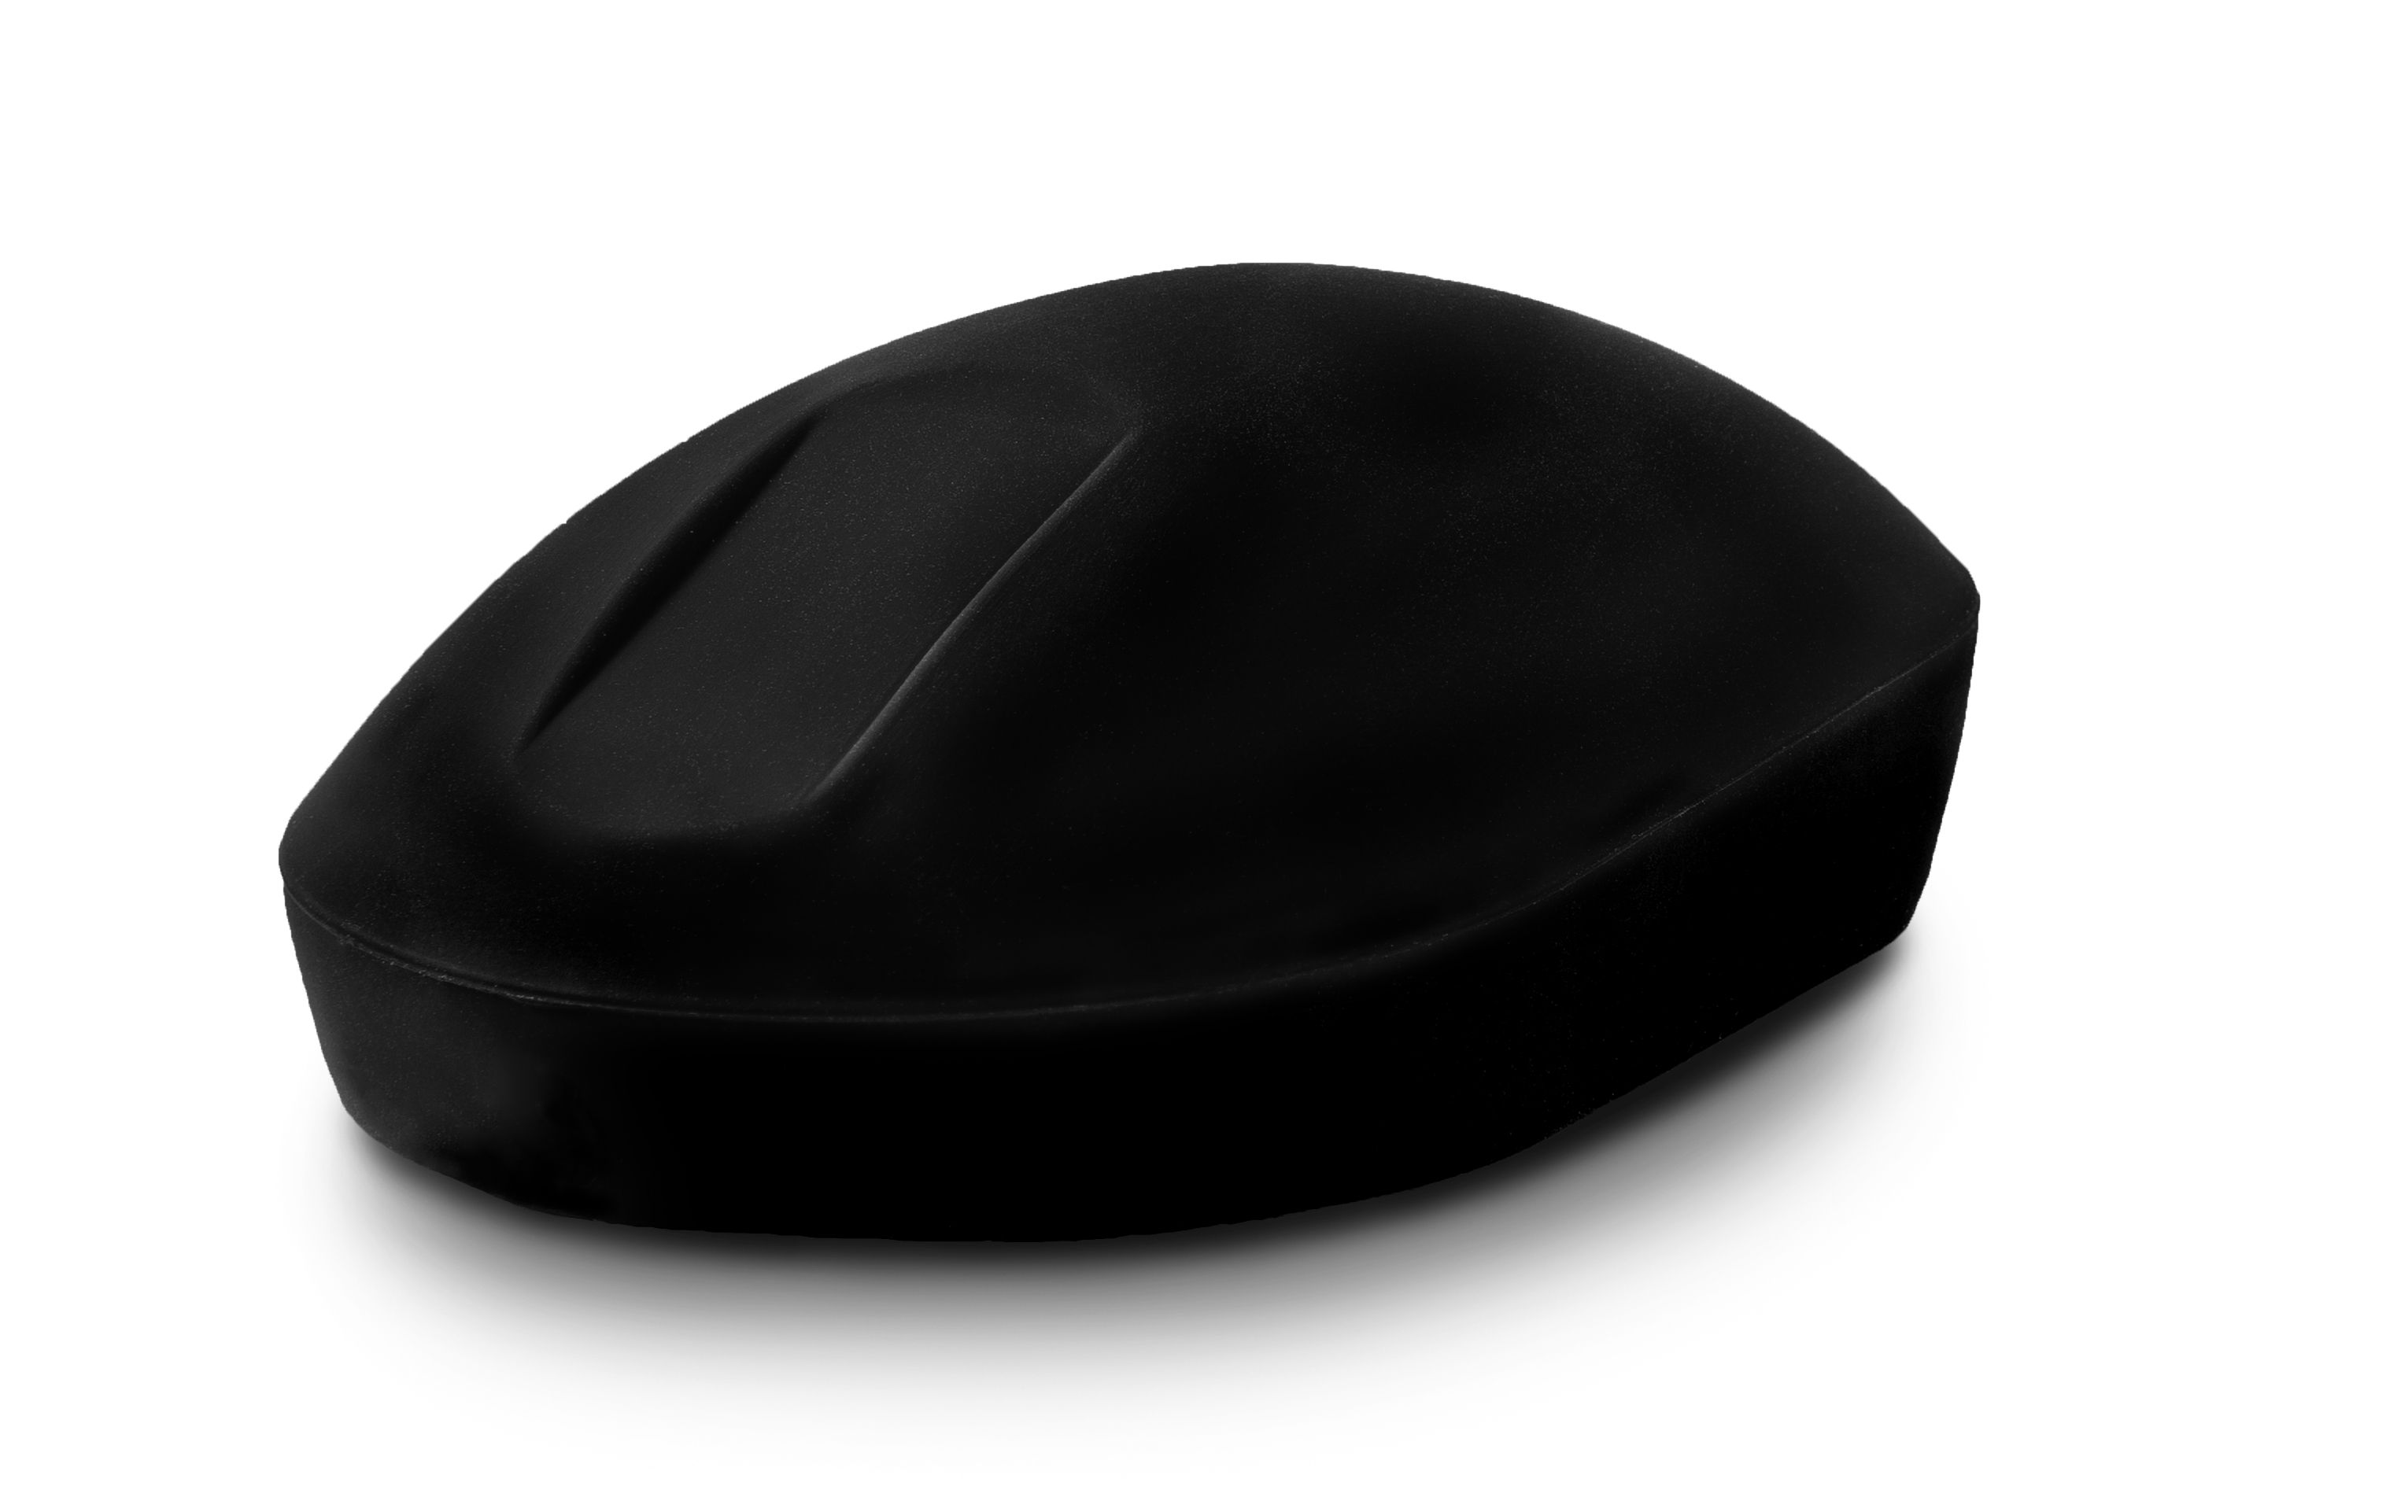 Wireless black mouse angle